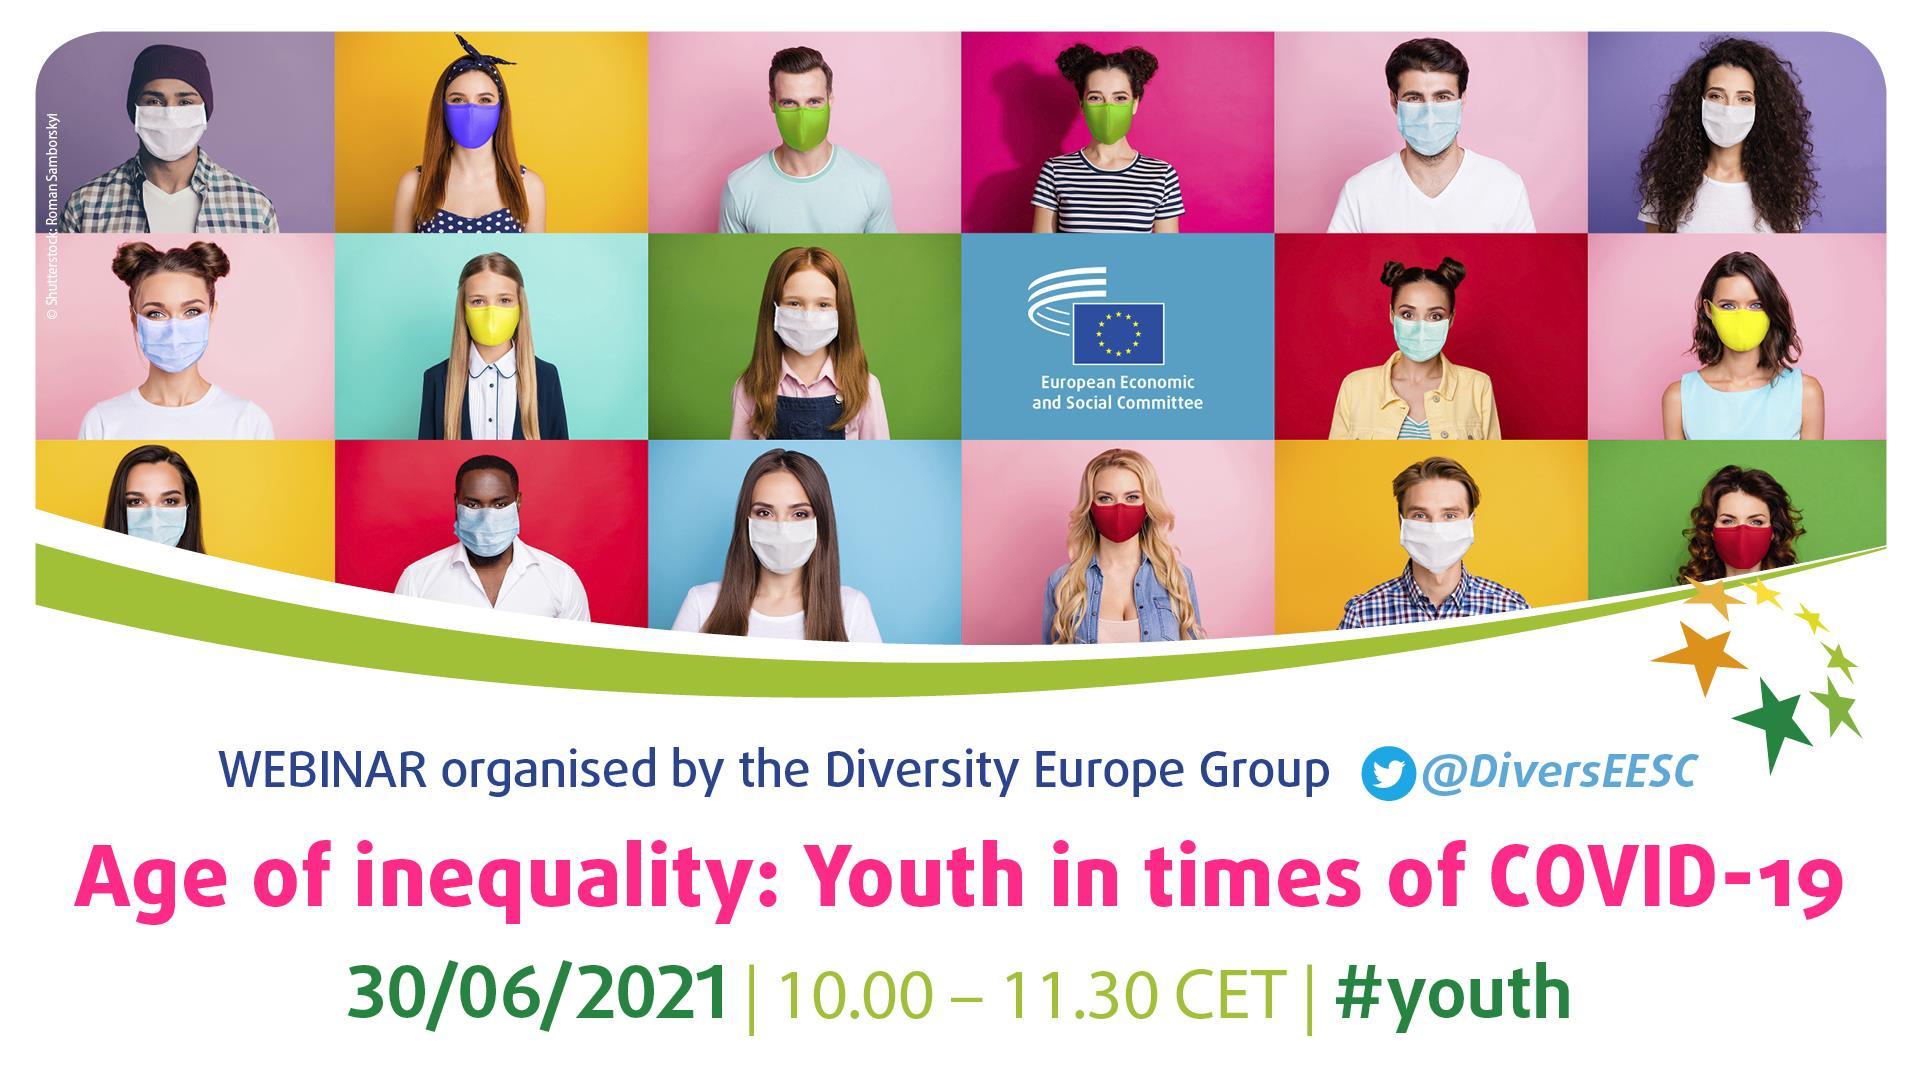 Age of inequality: Youth in times of COVID-19